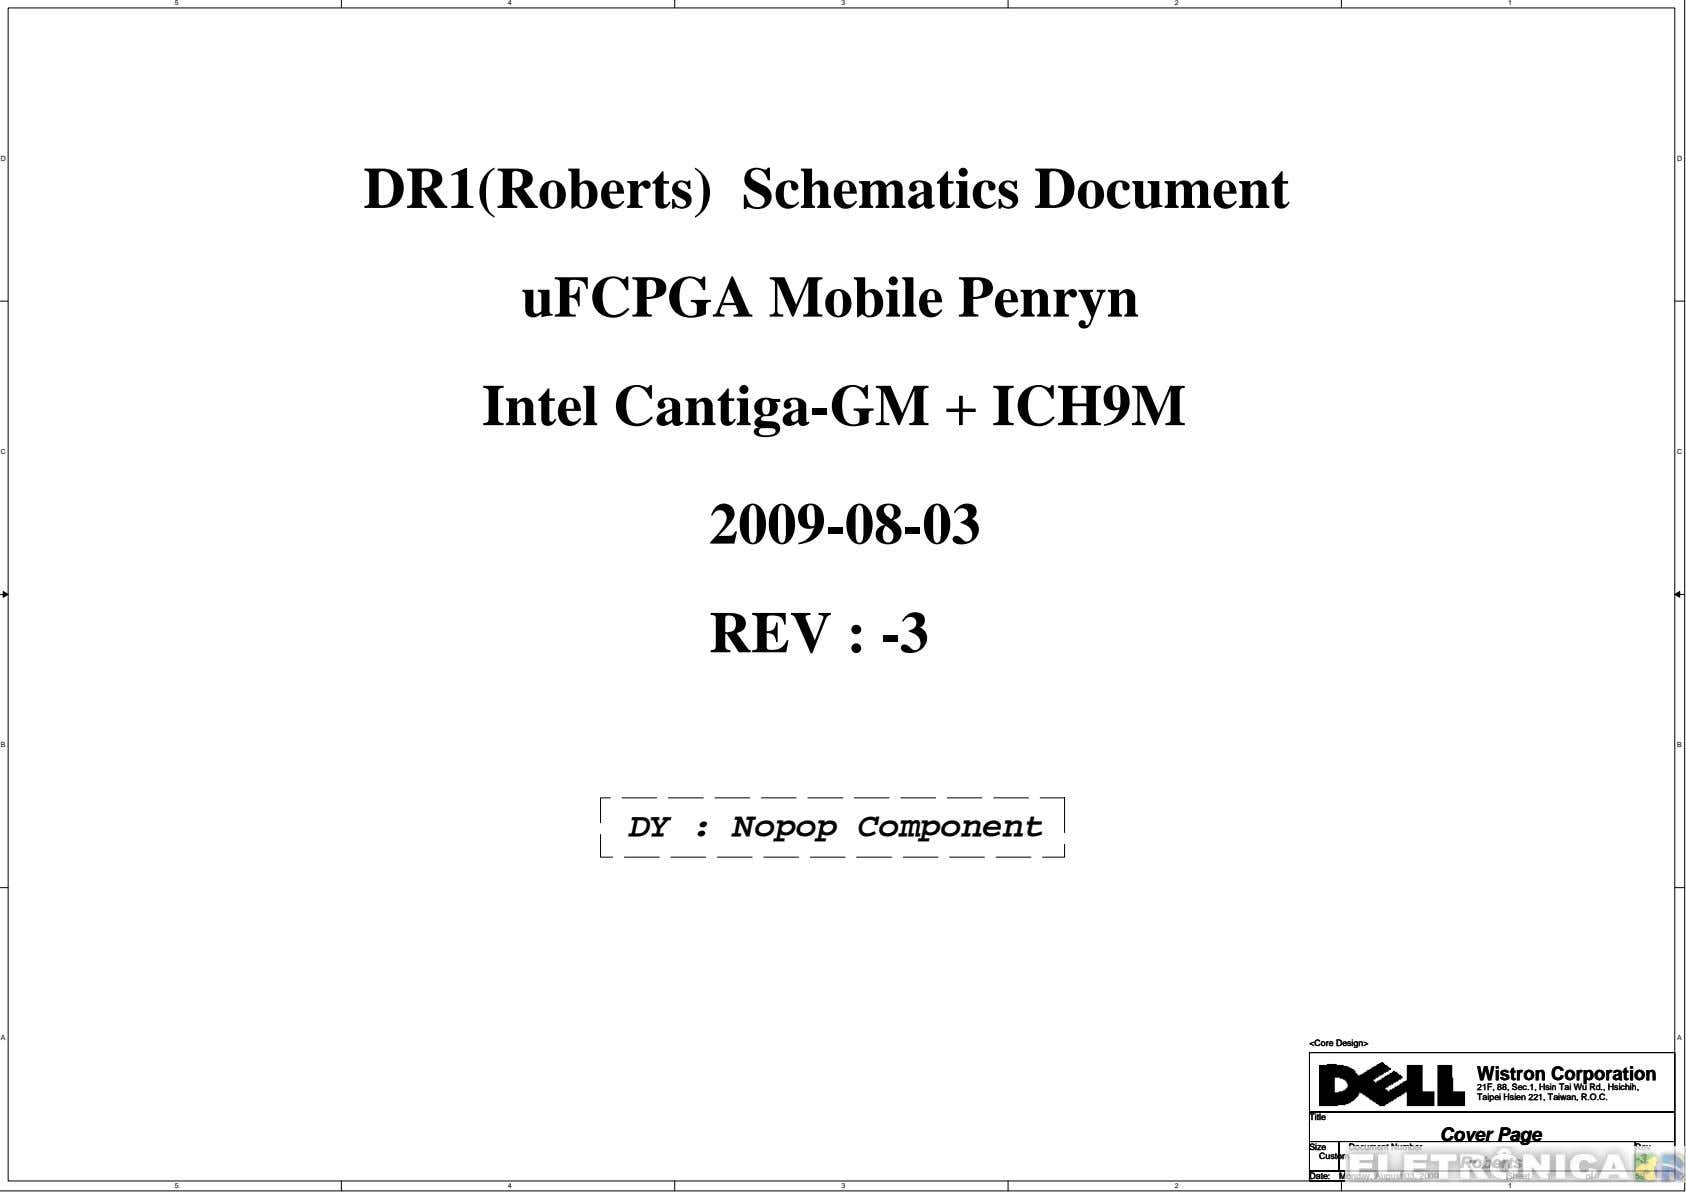 5 4 3 2 1 D D DR1(Roberts) Schematics Document uFCPGA Mobile Penryn Intel Cantiga-GM